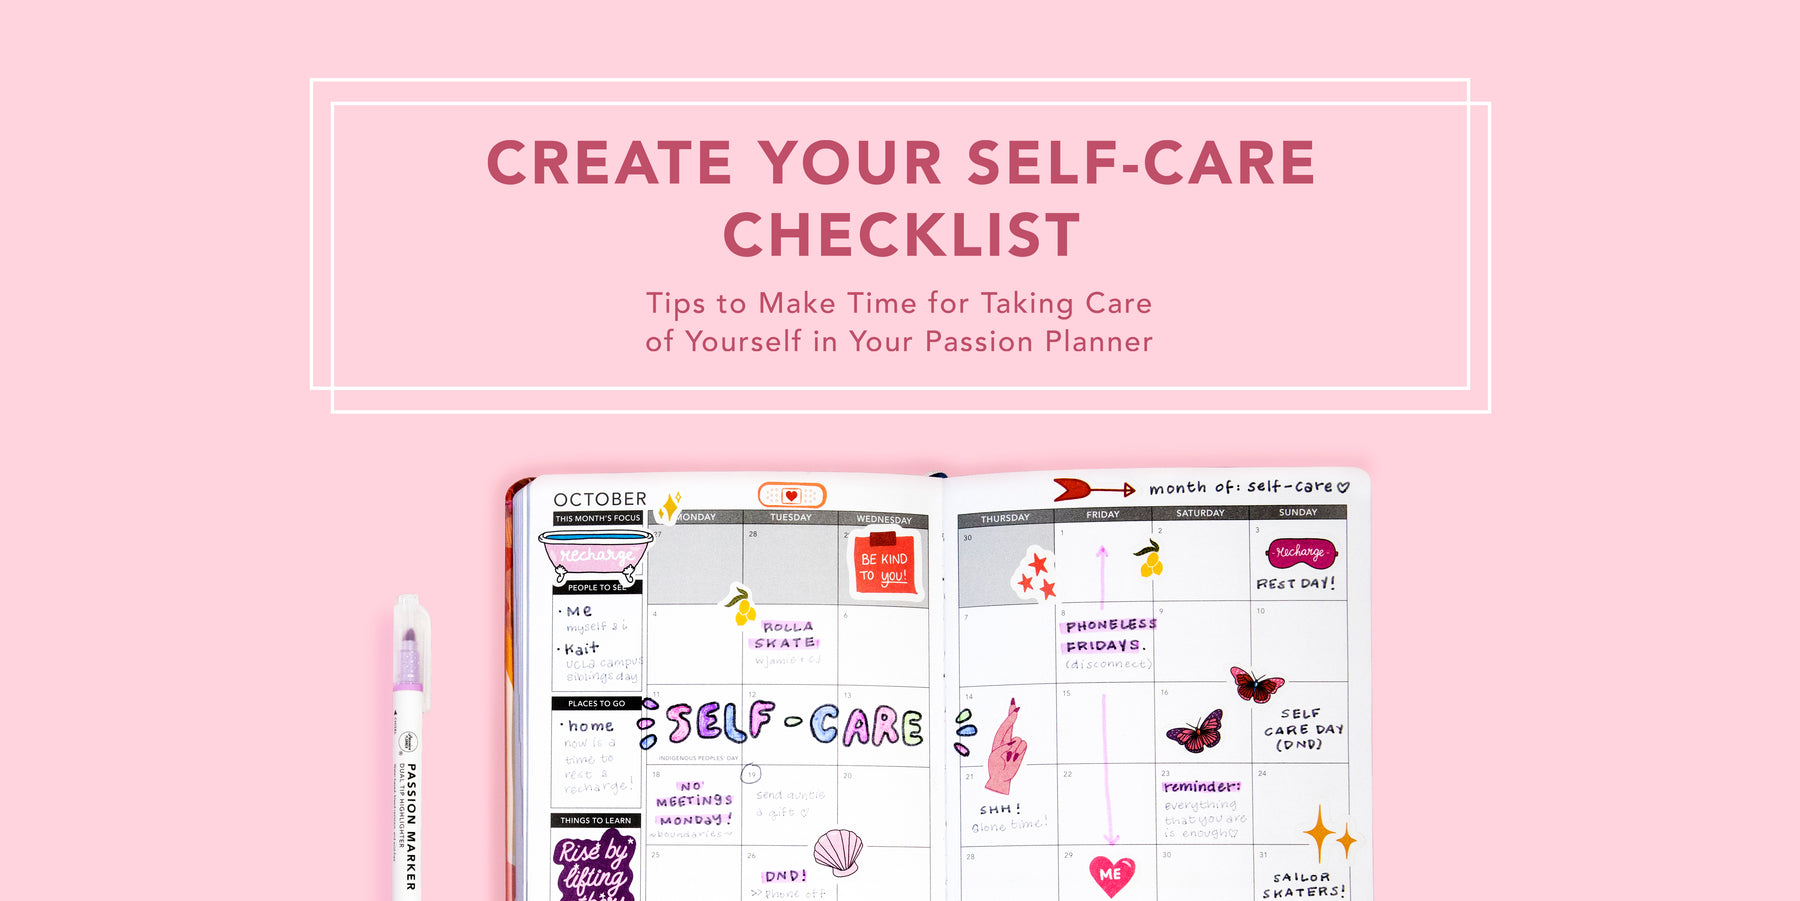 Create Your Self-Care Checklist: How to to Make Time for Taking Care of Yourself in Your Passion Planner